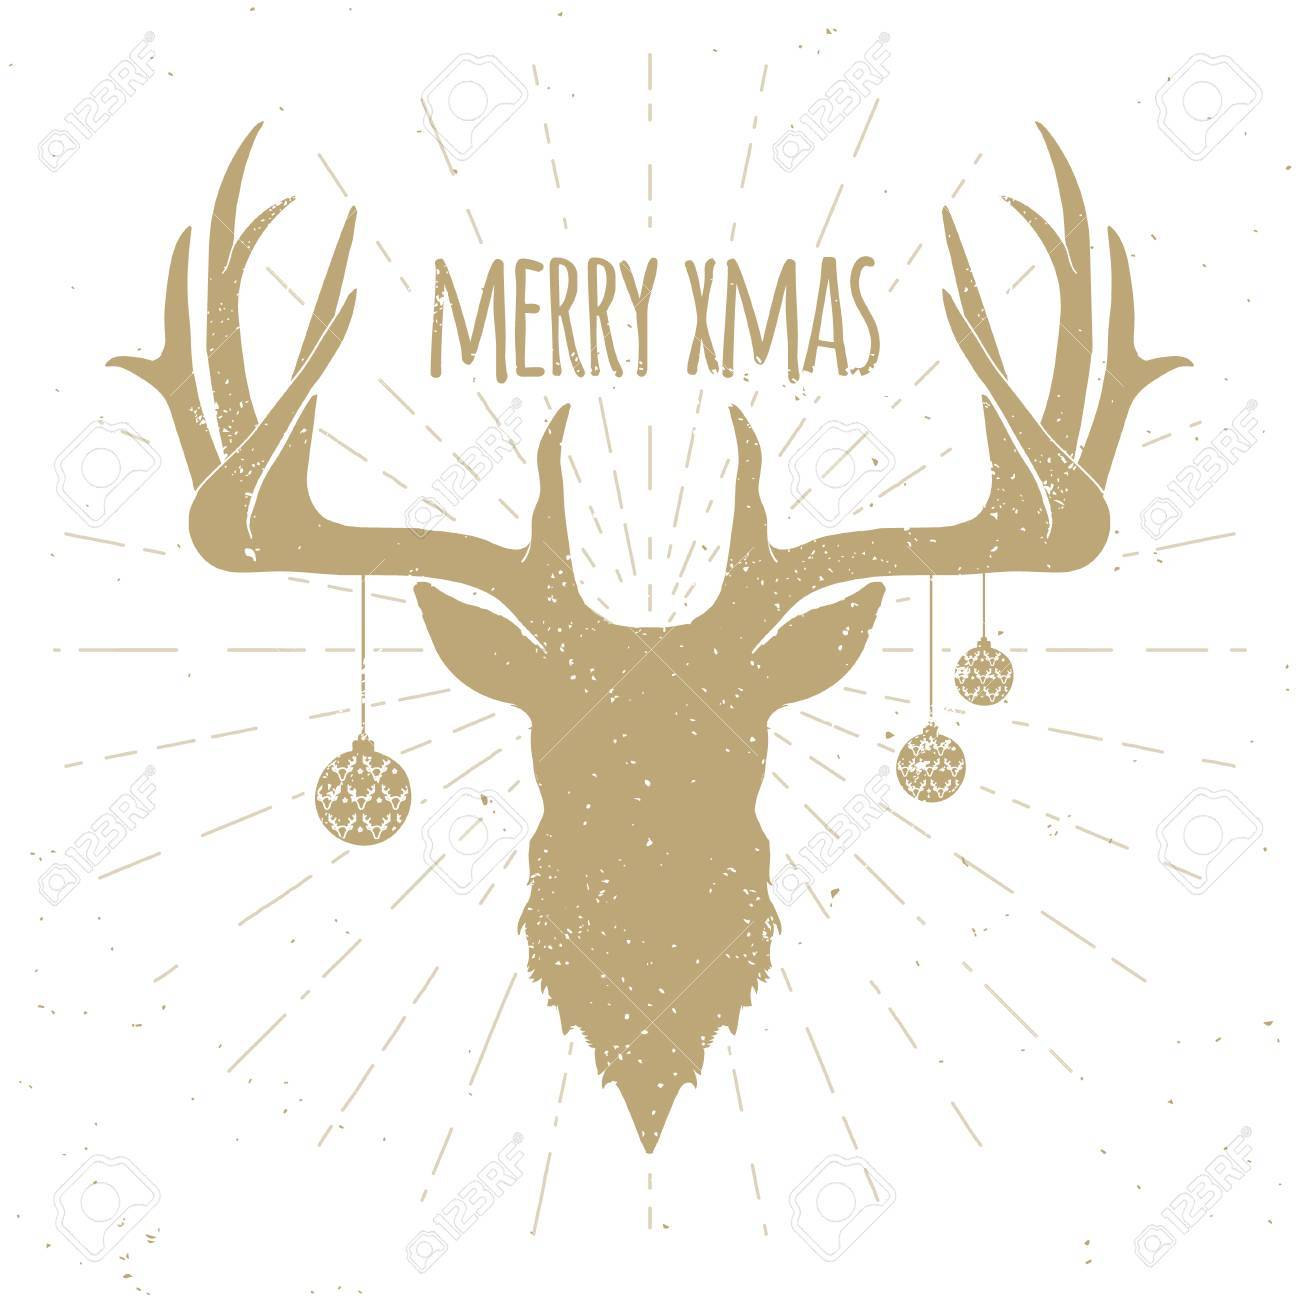 Hipster Vintage Christmas Deer, Gold Silhouette on White Background.